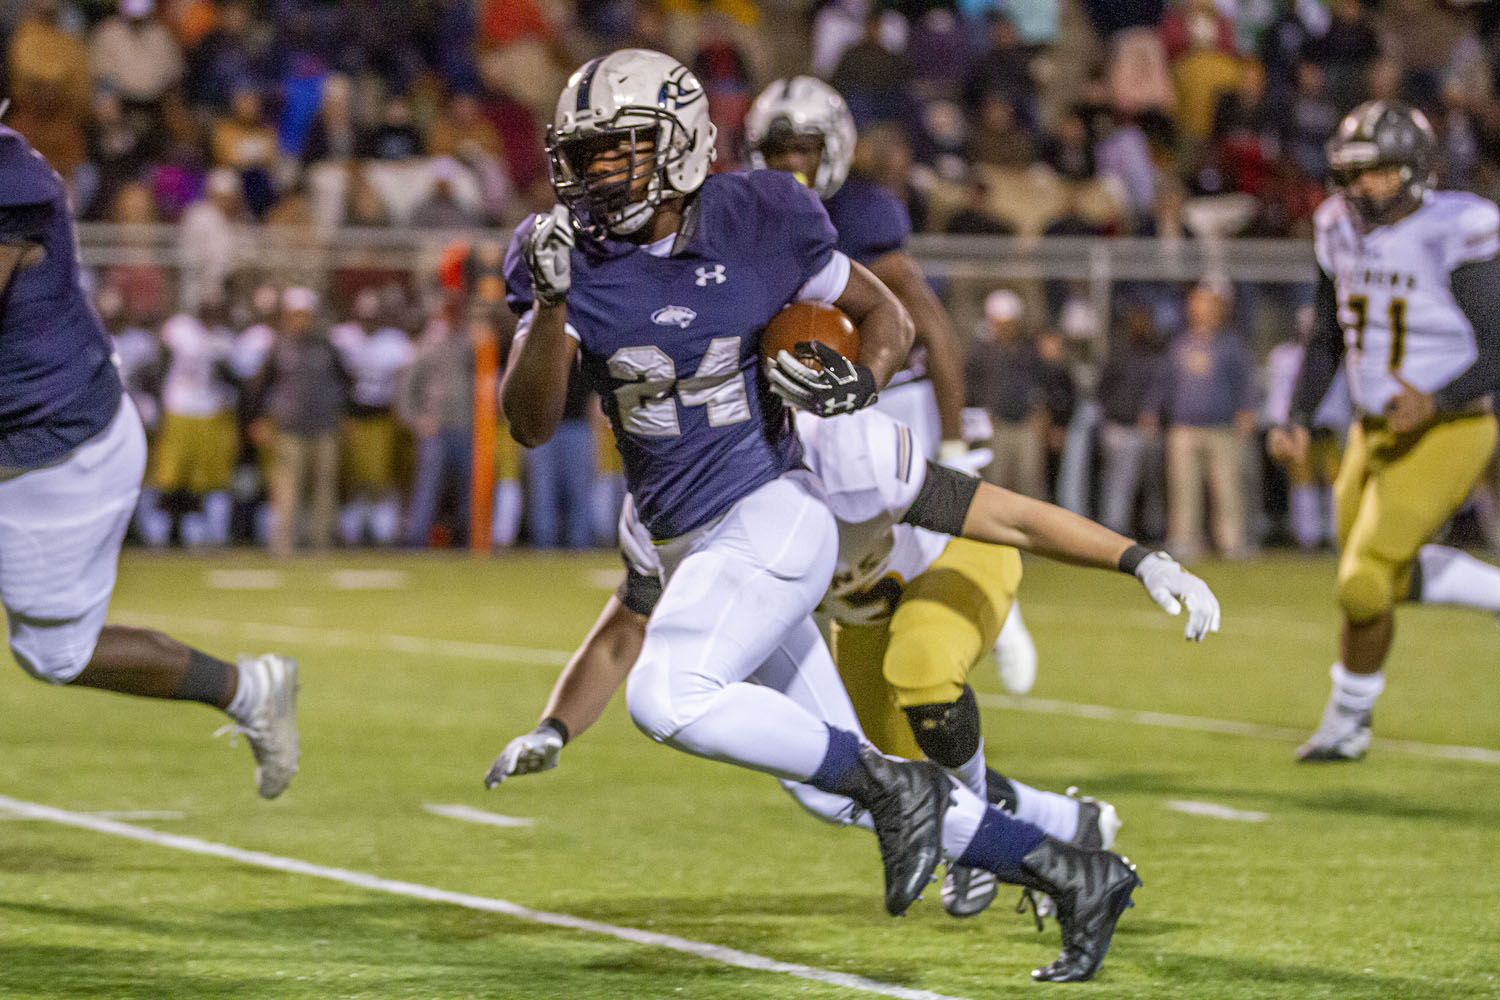 Quick Look: Oxford out for revenge as Clay-Chalkville looks to end Yellow Jacket's season for 3rd straight year